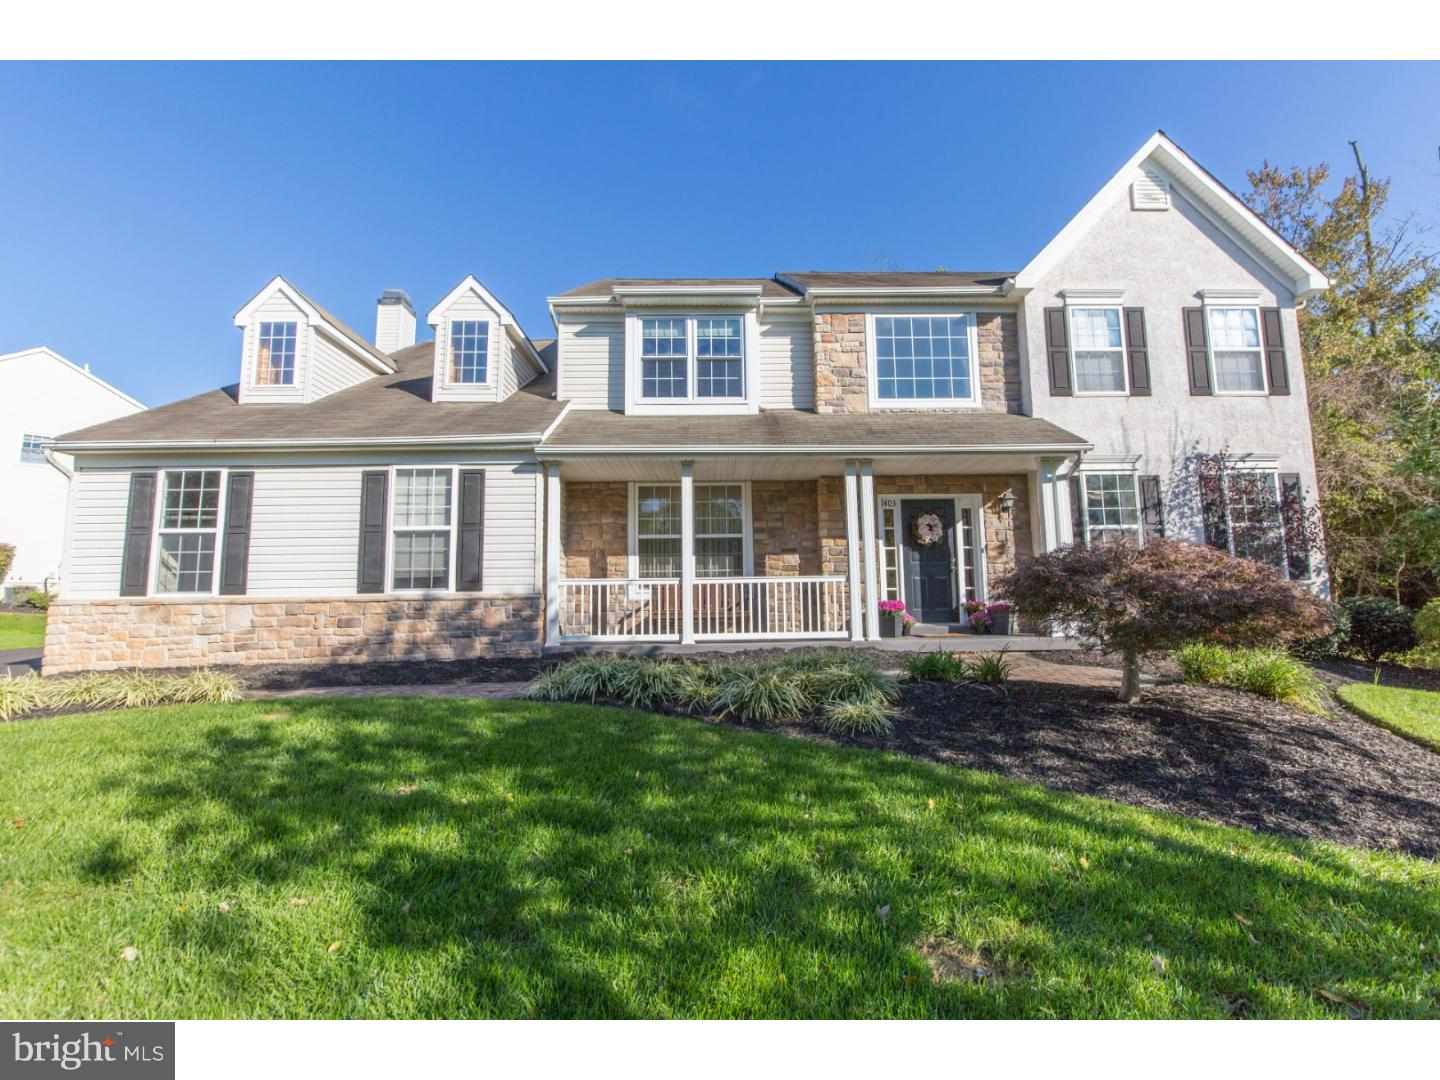 1403 WOODROSE MANOR DRIVE, WARRINGTON, PA 18976